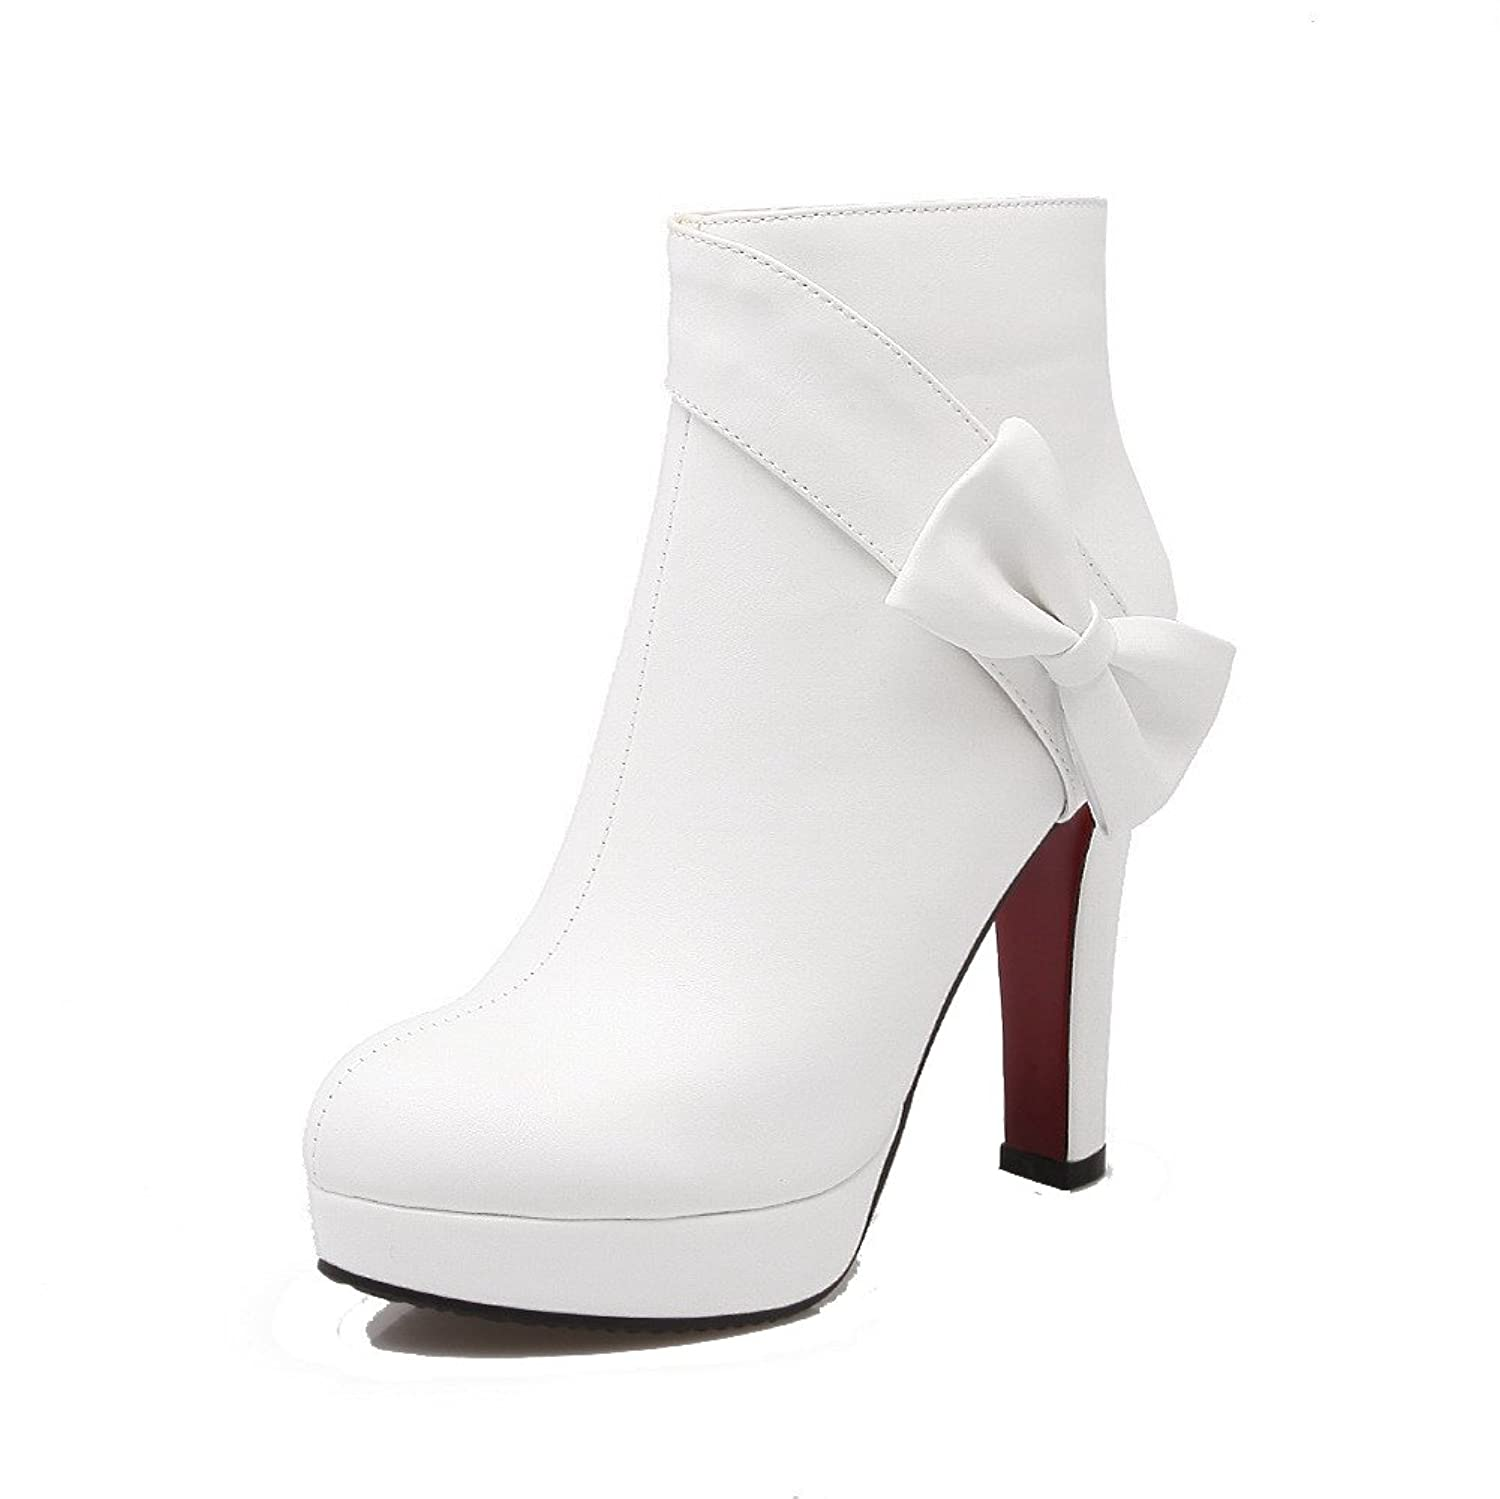 AllhqFashion Women's High-Heels Solid Closed Round Toe Soft Material Zipper Boots